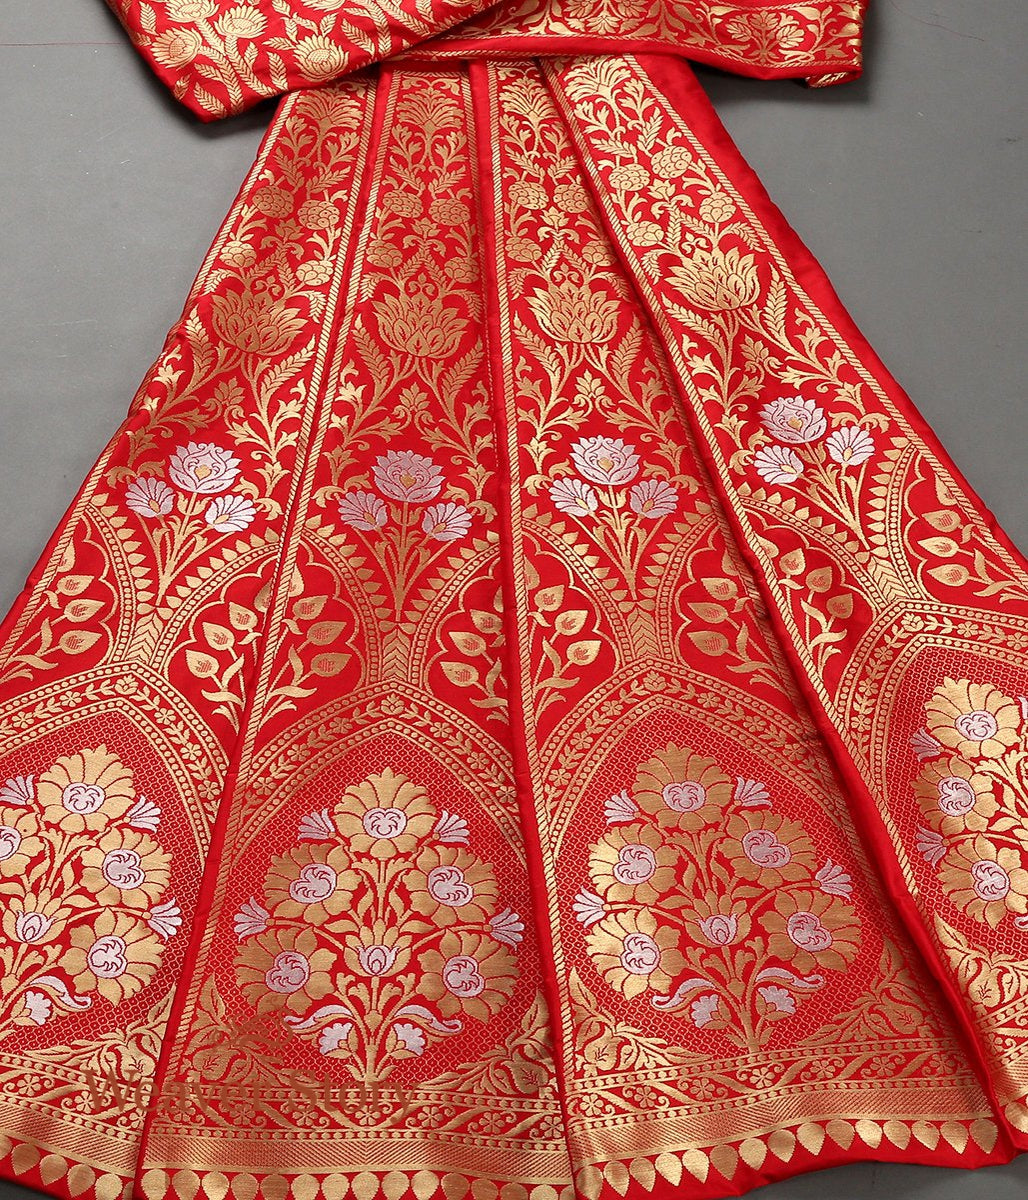 Handwoven Red Banarasi Lehenga with Gold Zari